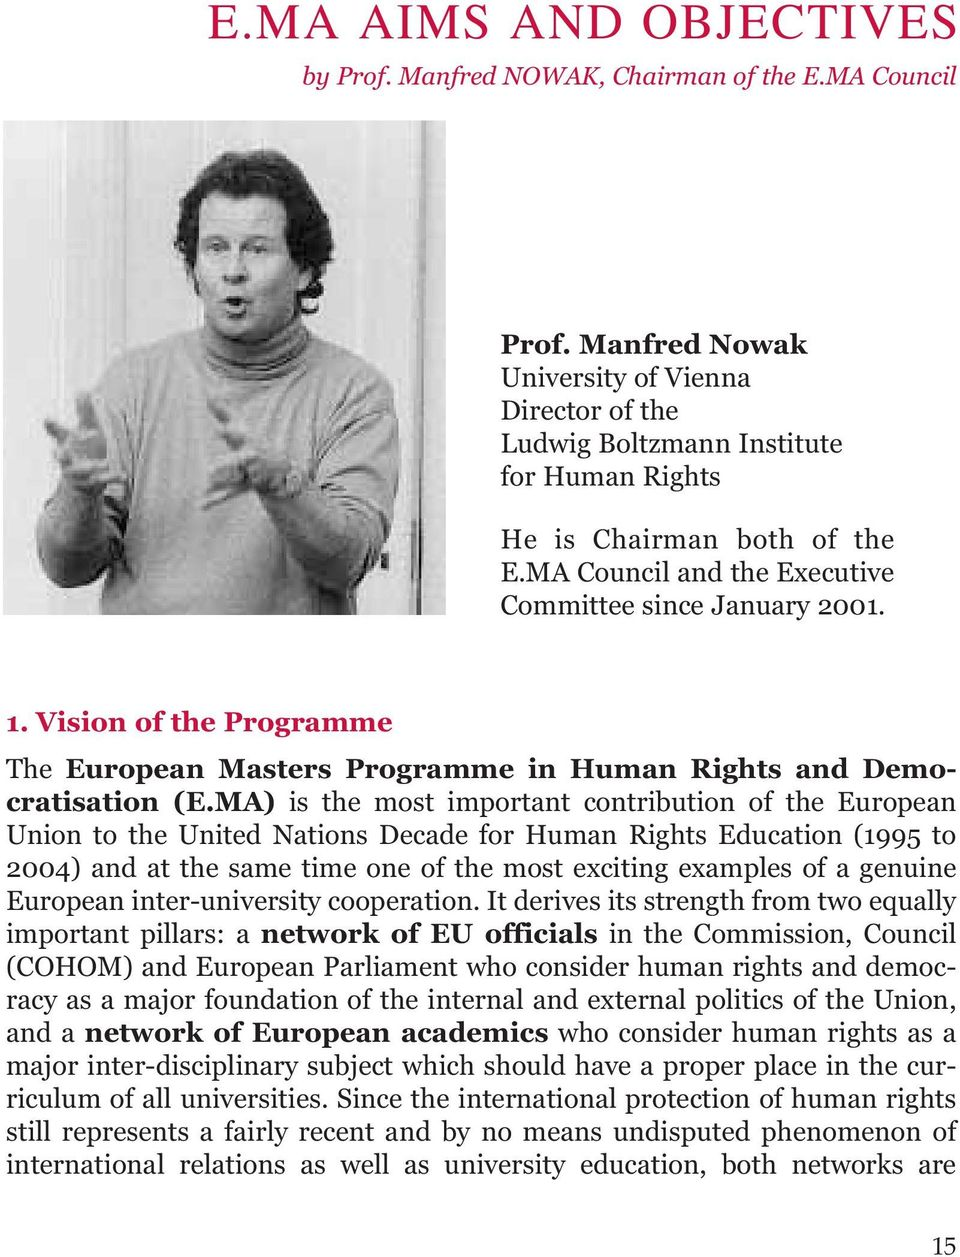 Vision of the Programme The European Masters Programme in Human Rights and Democratisation (E.